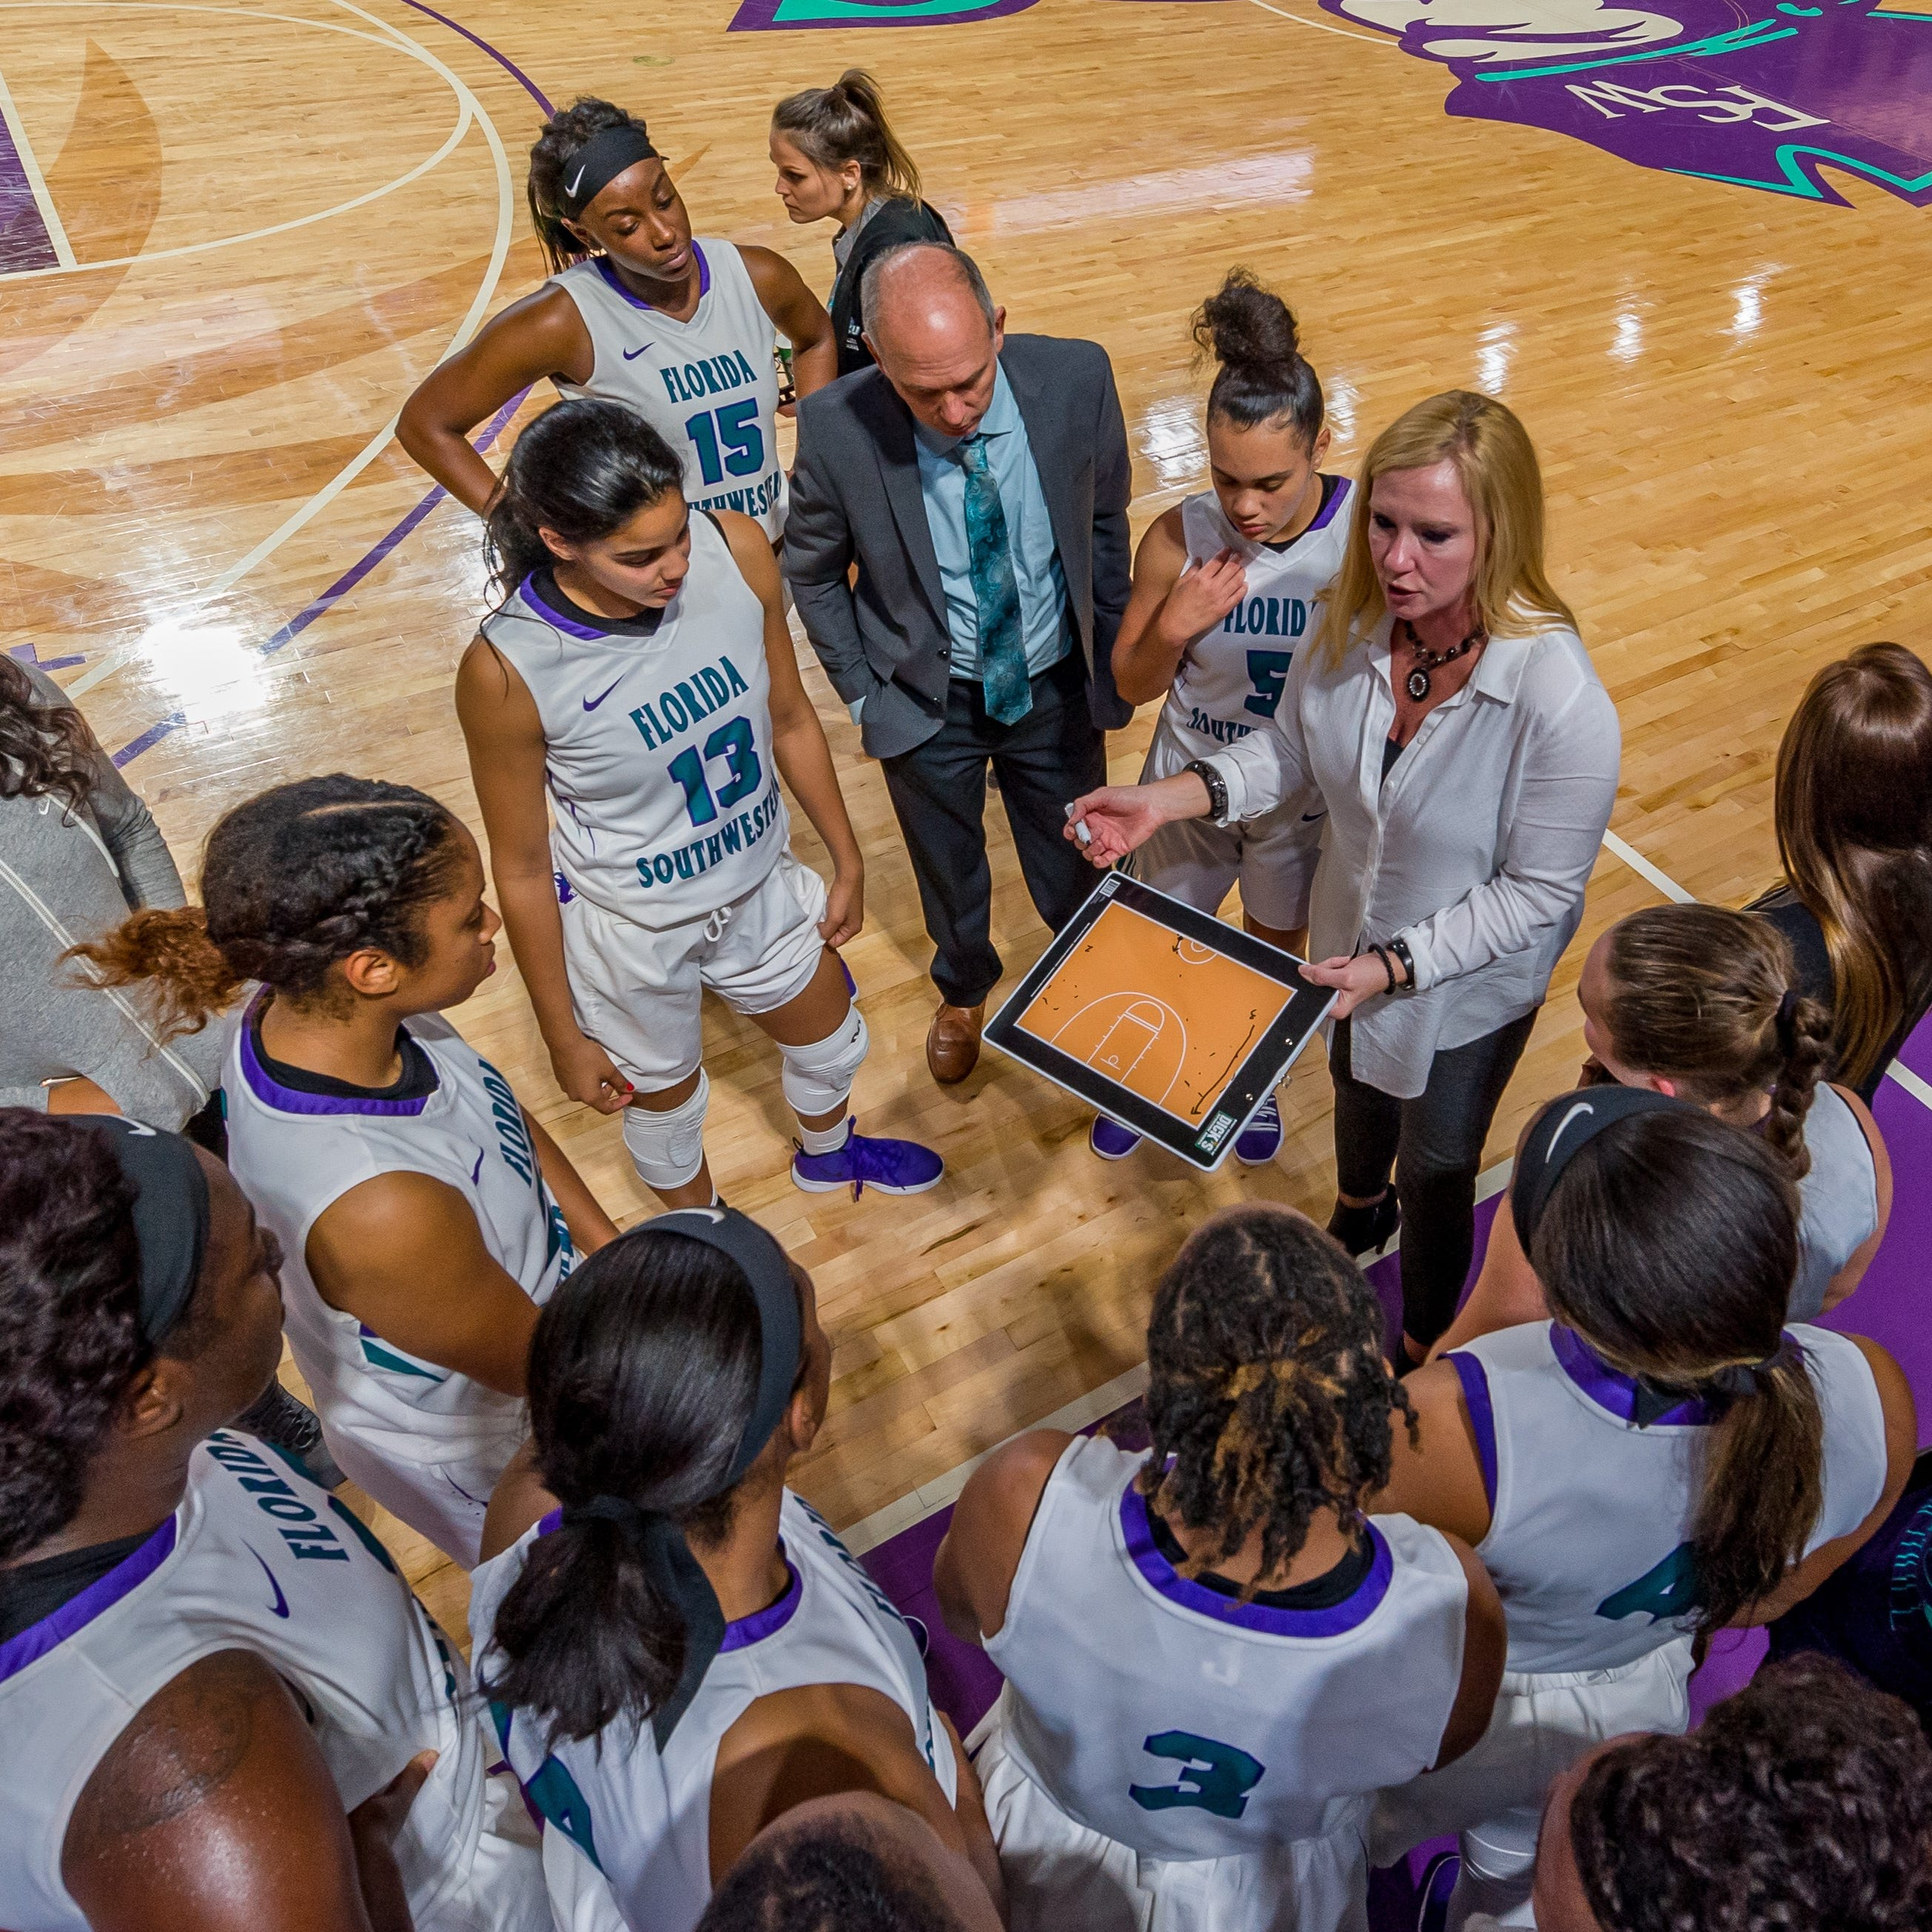 How long can they go? Florida SouthWestern athletics riding 57-game winning streak